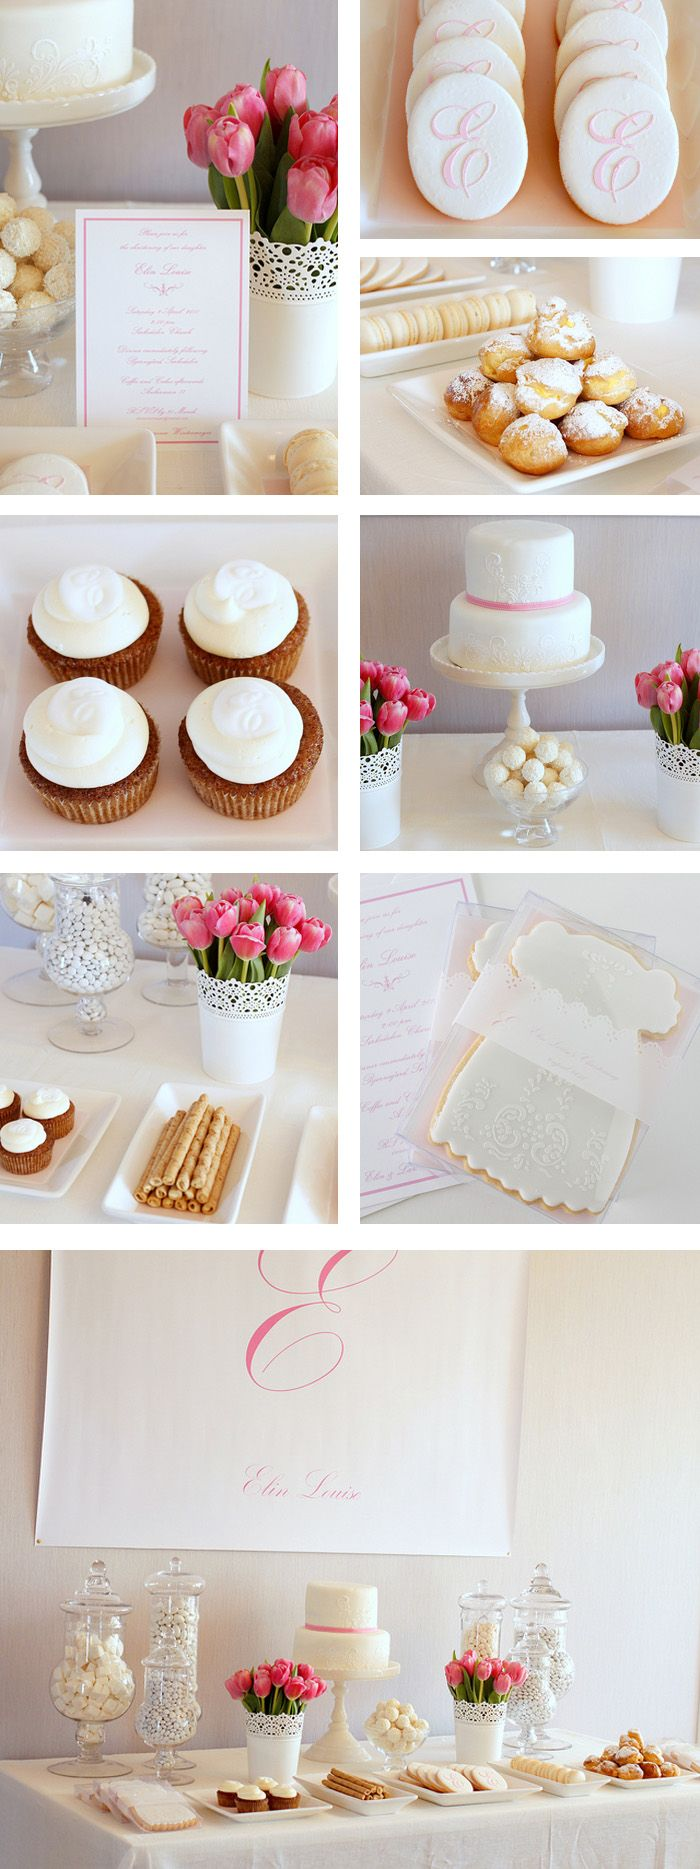 white Christening gown cookies are so pretty! The monogram cookies are classy.